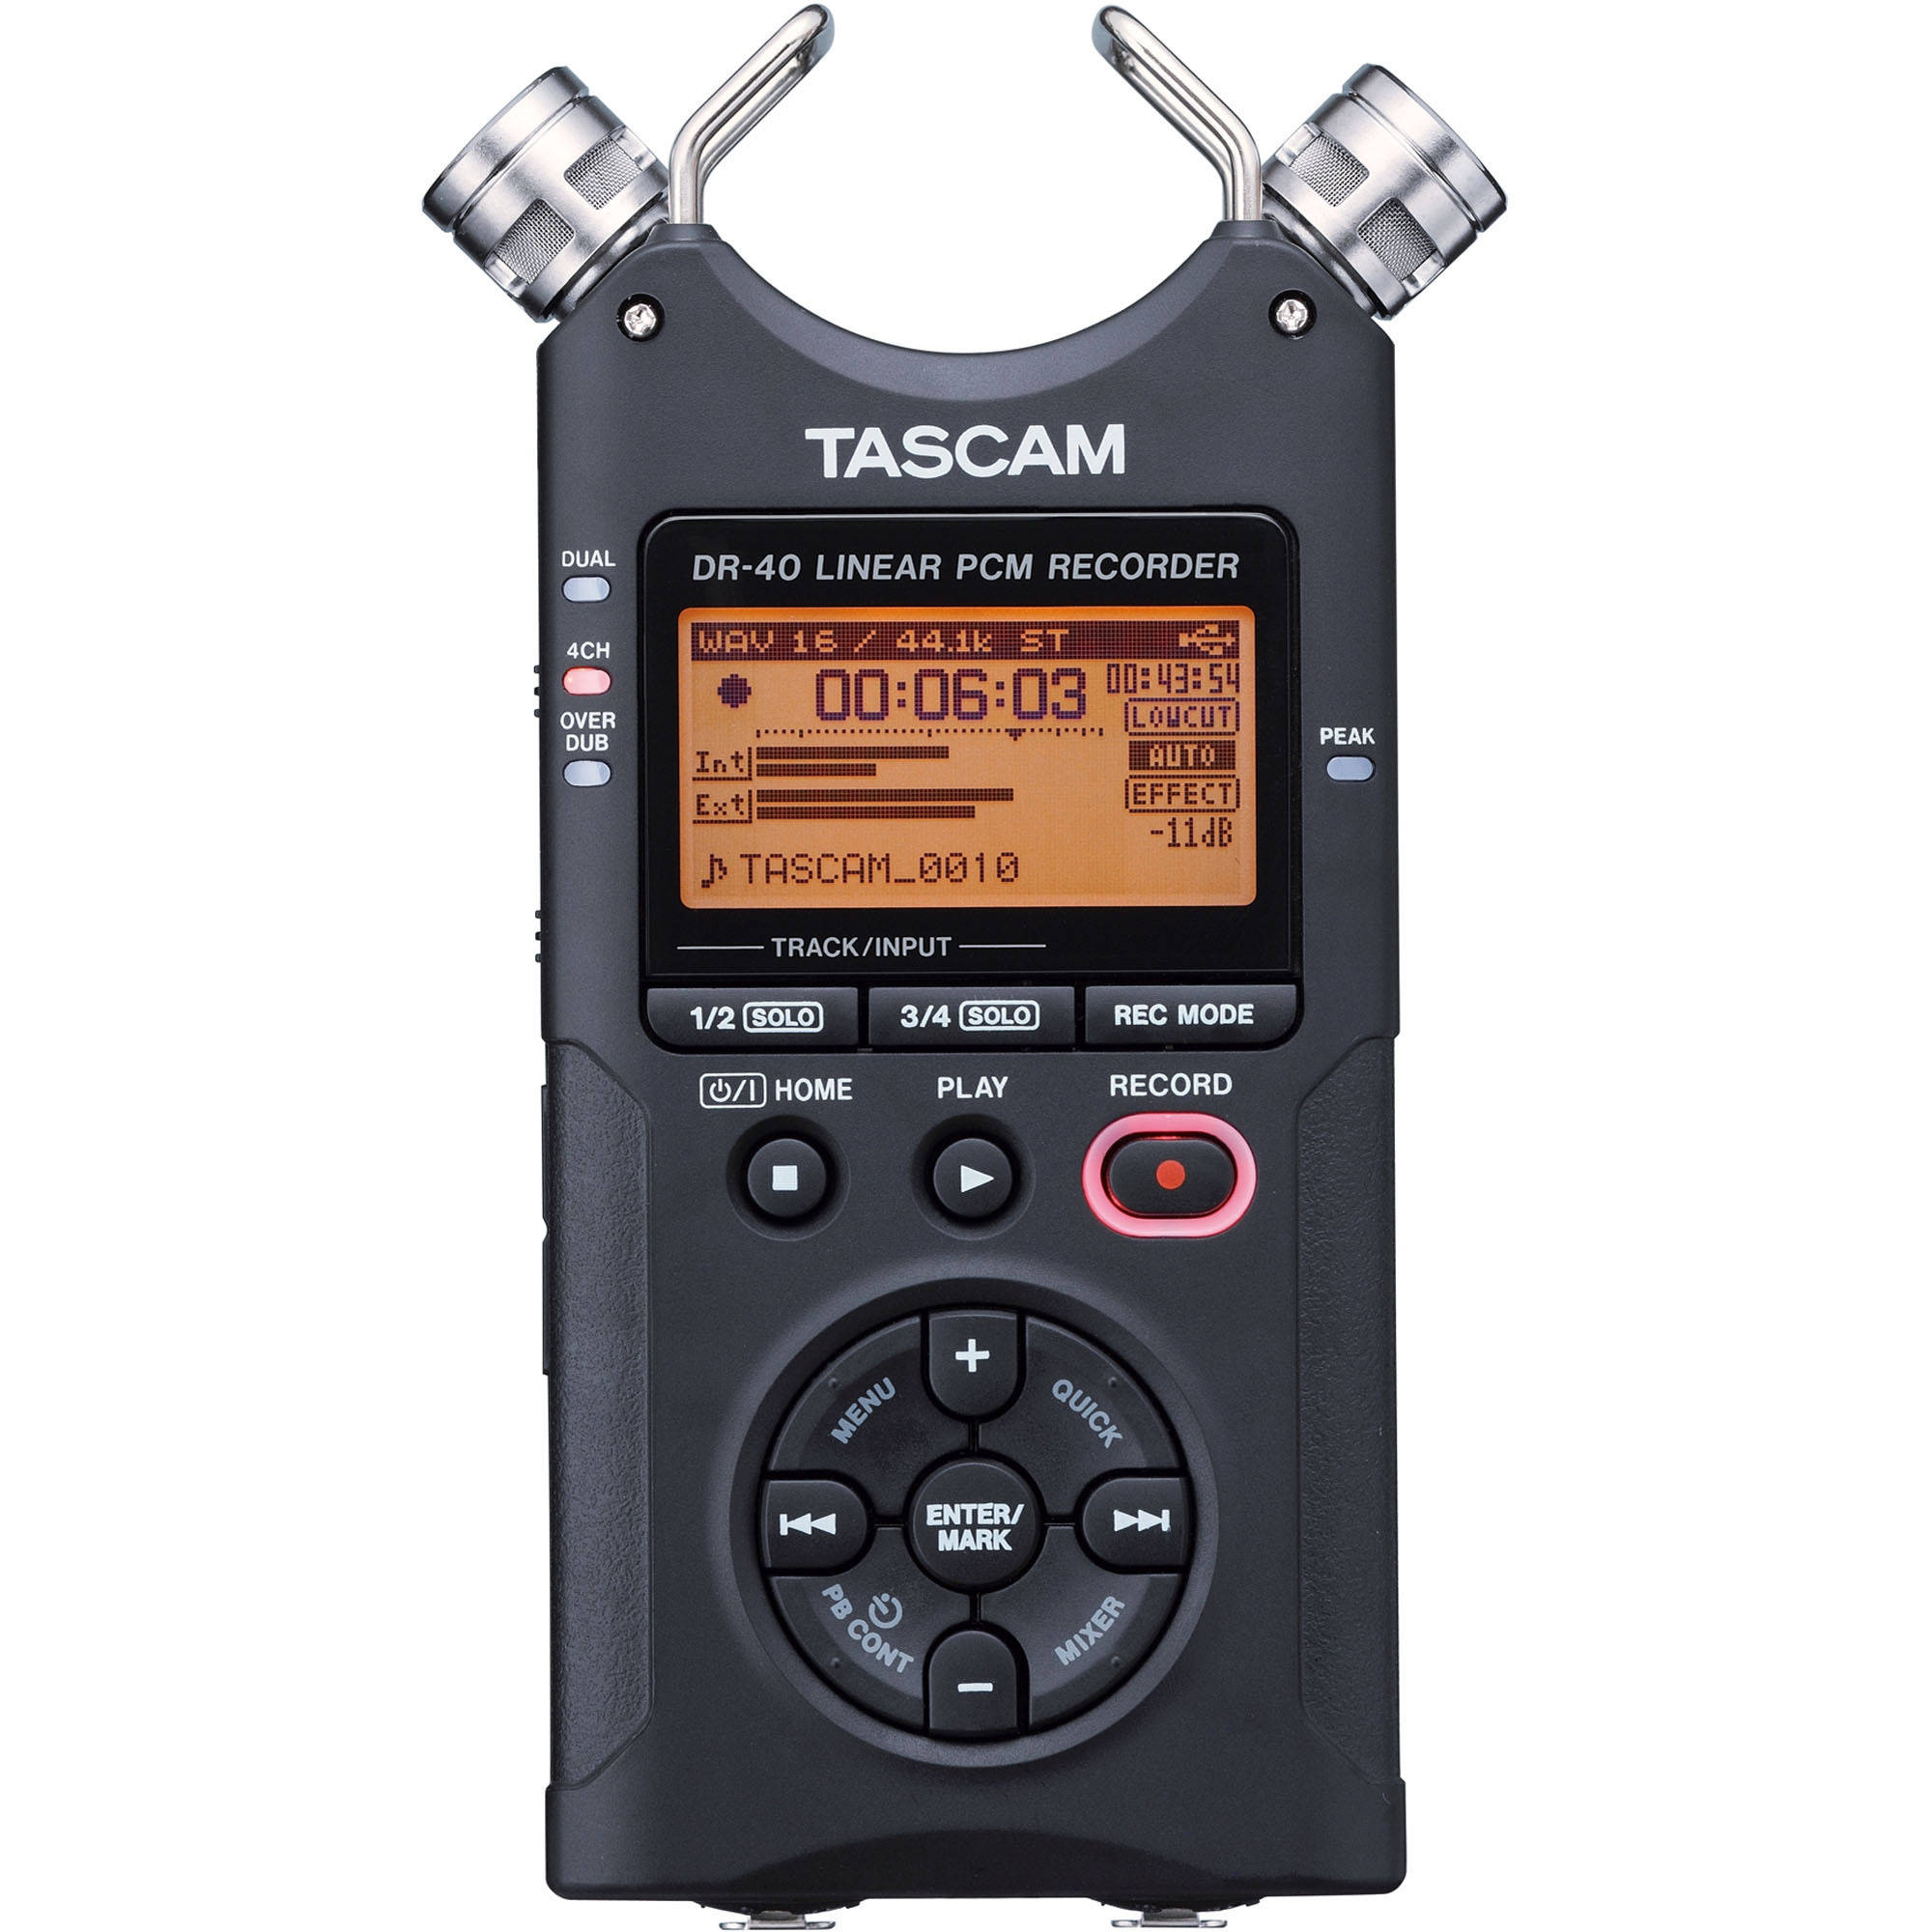 Tascam Portable Recorder with